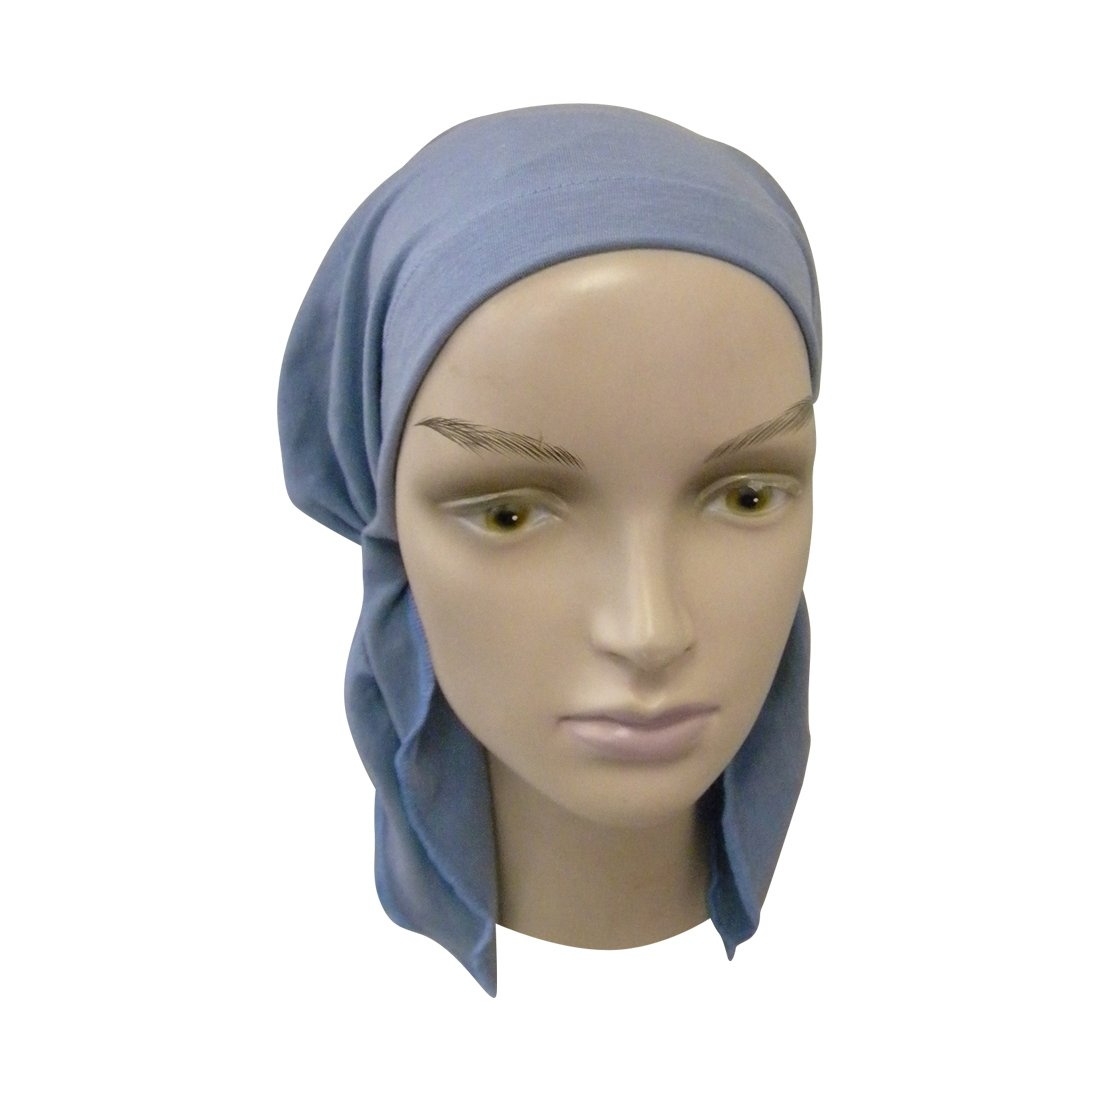 Cranberry Kids Chemo Cap Pretied for Girls Soft Cancer Scarf